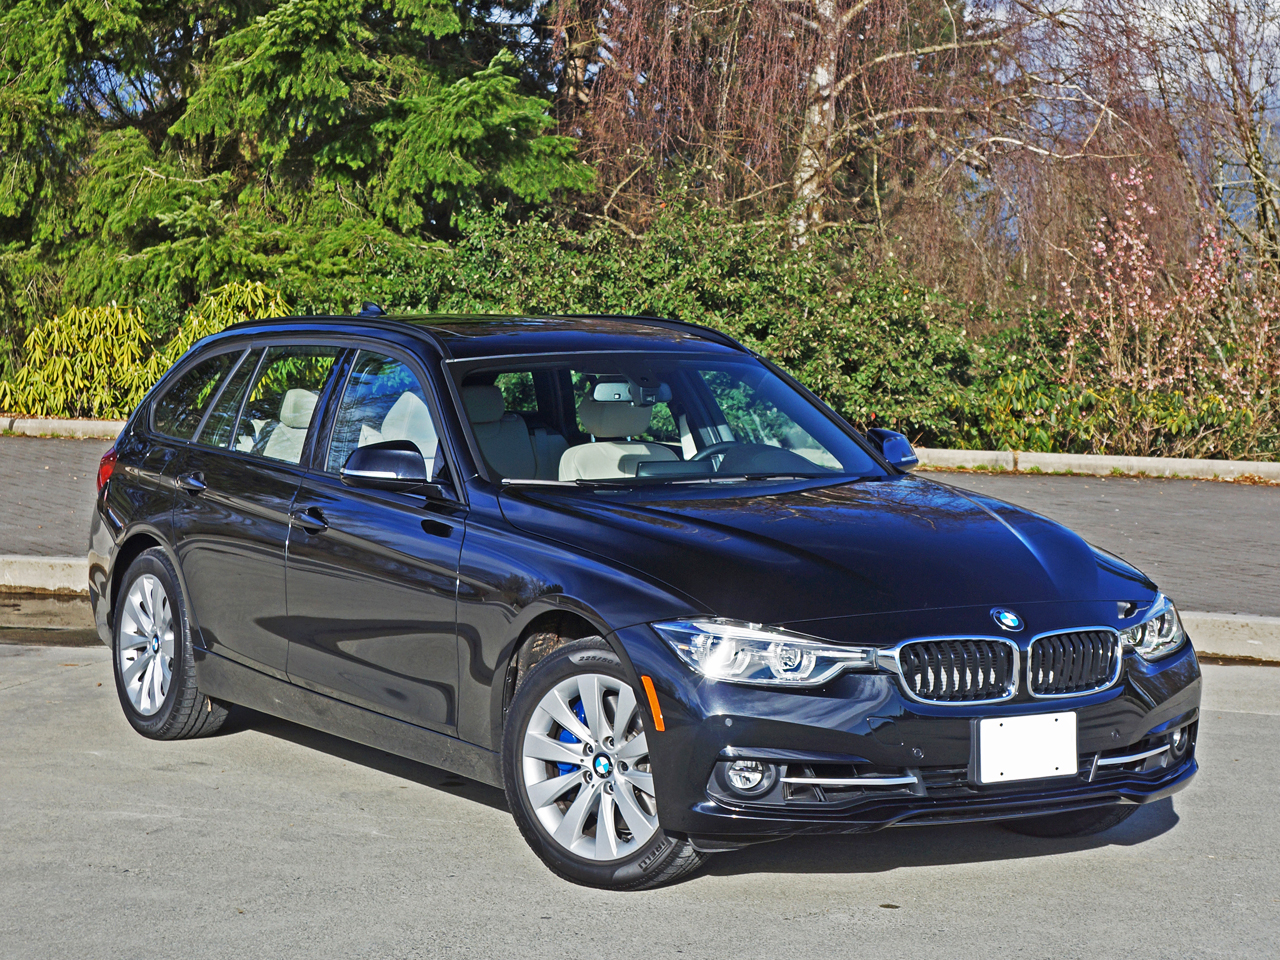 2016 BMW 328i xDrive Touring Road Test Review | CarCostCanada™